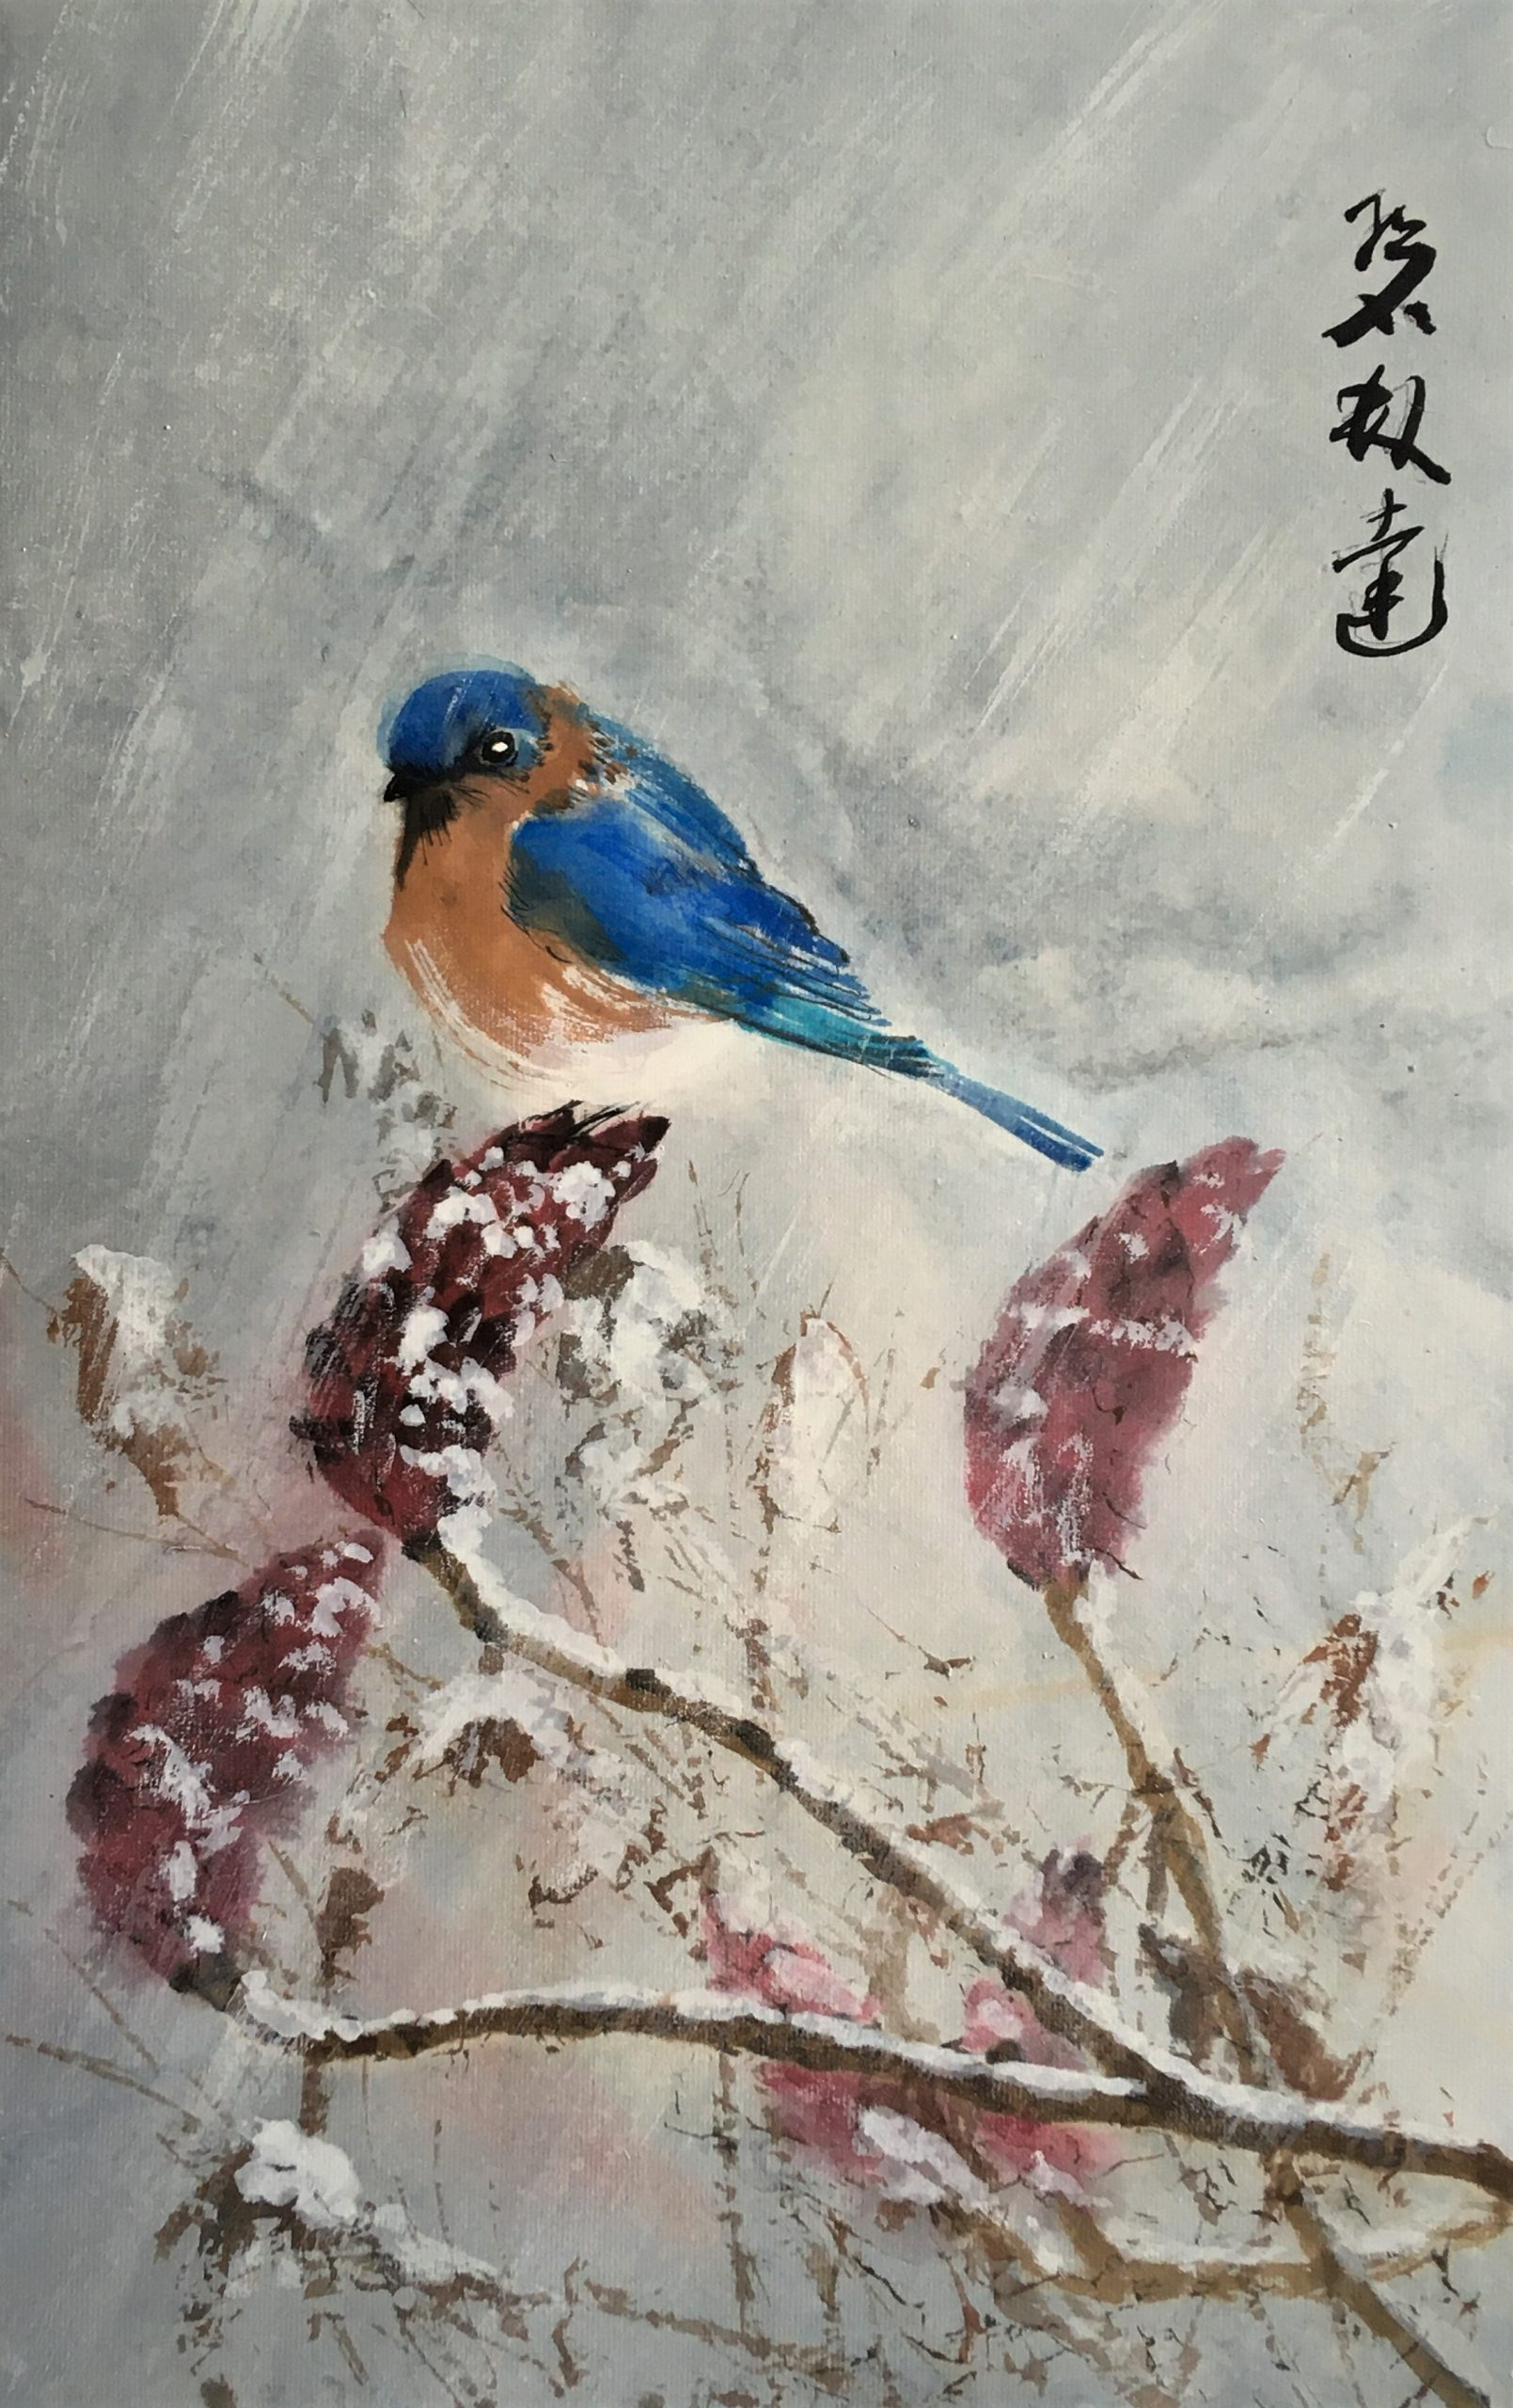 Bluebird on Staghorn Sumac, Chinese ink and watercolor on rice paper